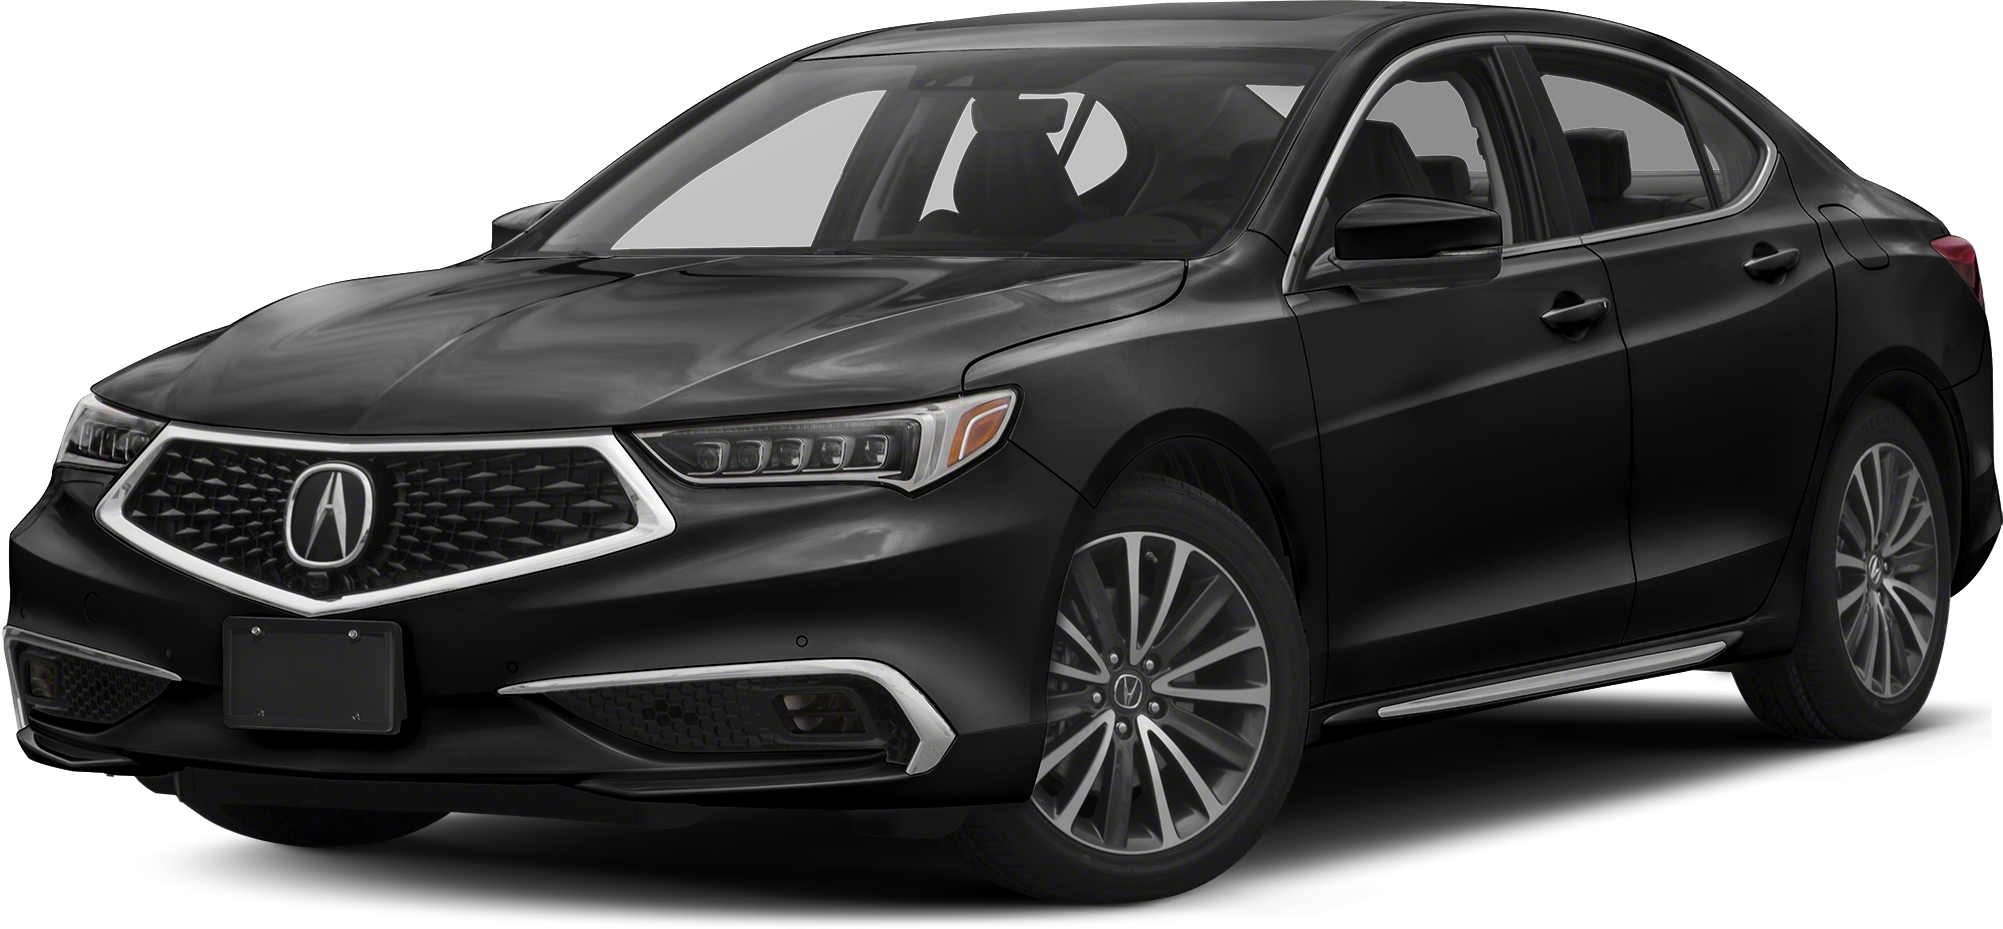 2018 acura tlx 3 5 v 6 9 at p aws with advance package. Black Bedroom Furniture Sets. Home Design Ideas